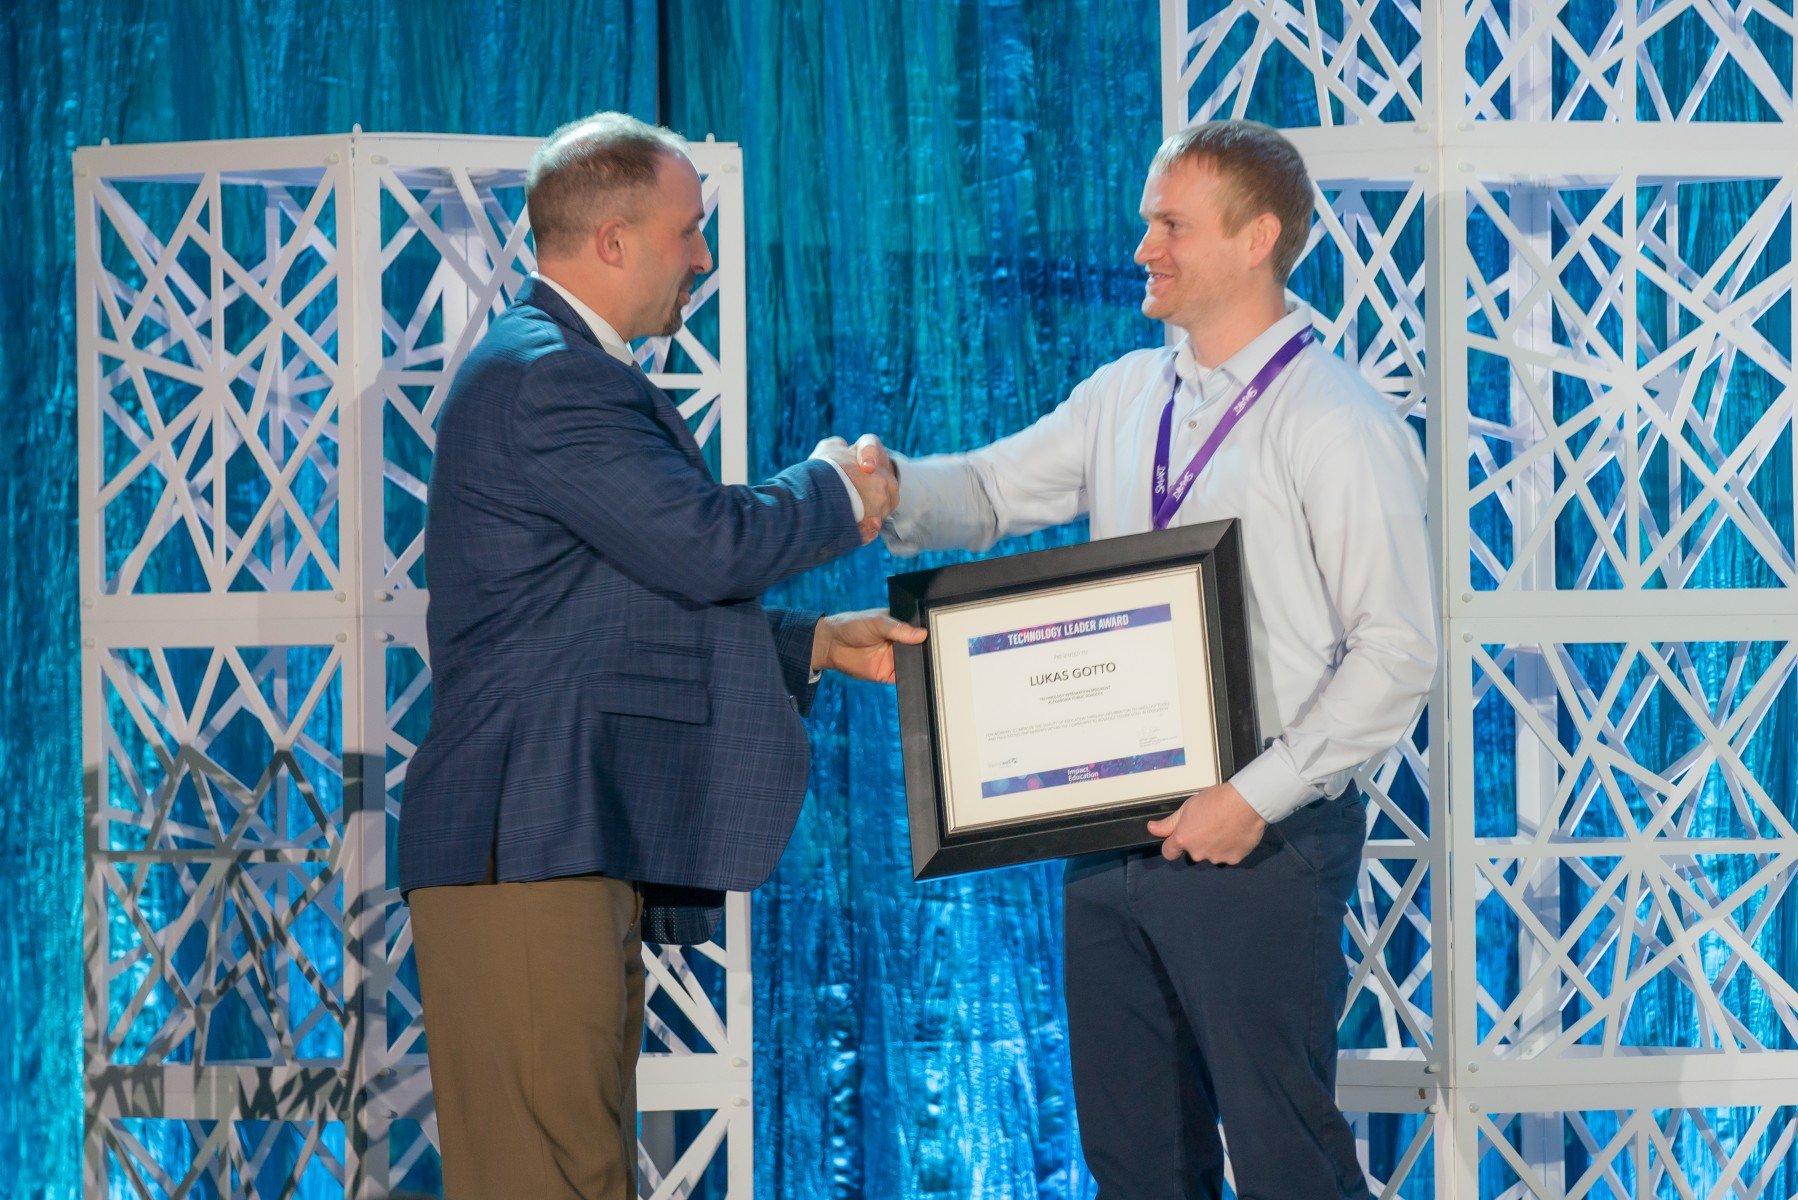 Lukas Gotto was named 2019 Technology Leader of the Year at the Impact Education Conference, December 16, 2019. Gotto is the Technology Integrationist at Alexandria Public Schools. Gotto (right) is pictured with Sourcewell CEO Chad Coauette.